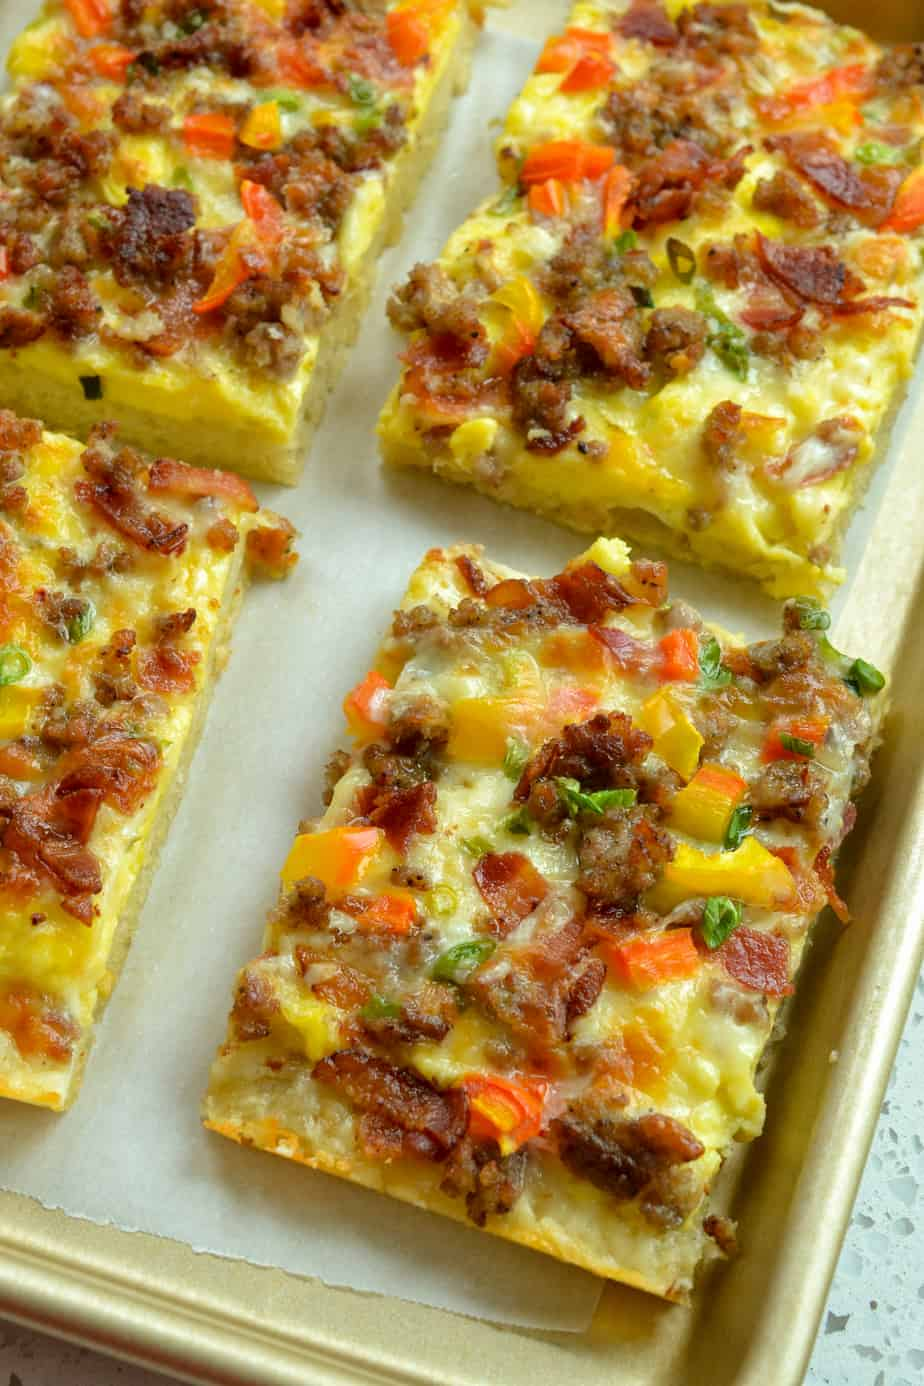 Tasty Breakfast Pizza combines crispy bacon, sausage, sweet peppers, green onions and cheese on a fresh baked pizza crust.